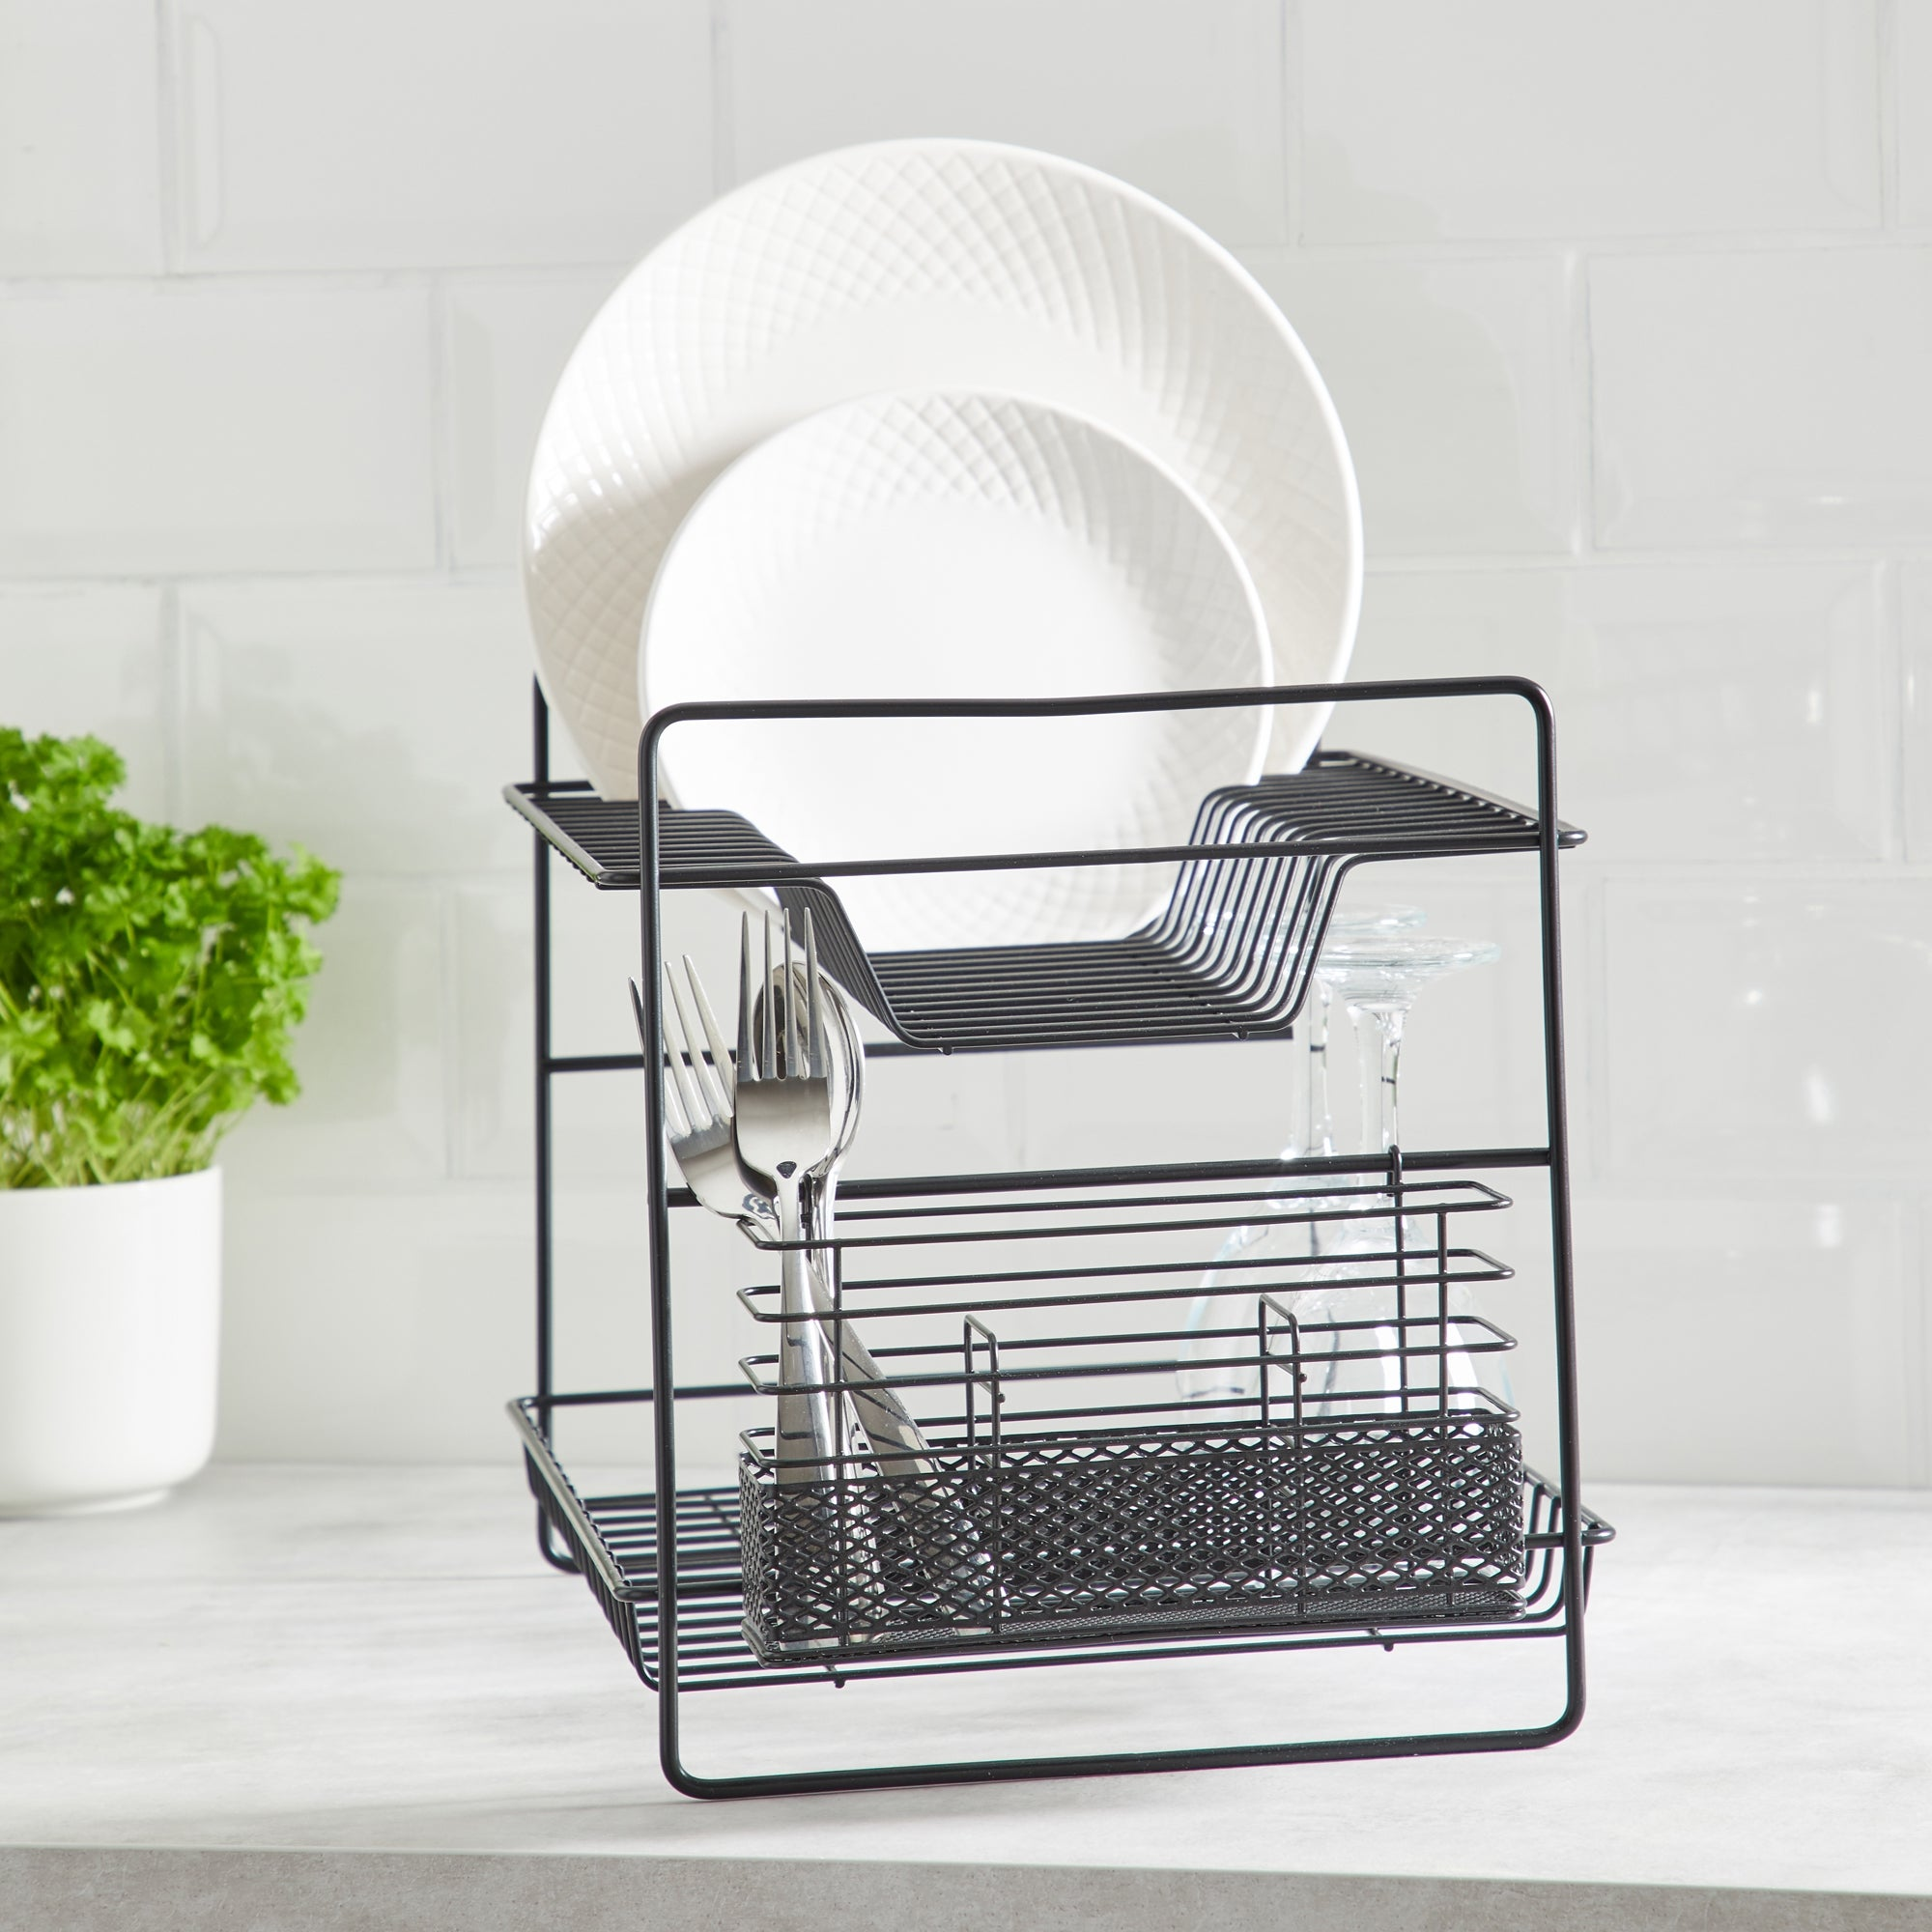 2 Tier Matt Black Dish Drainer and Cutlery Holder Black